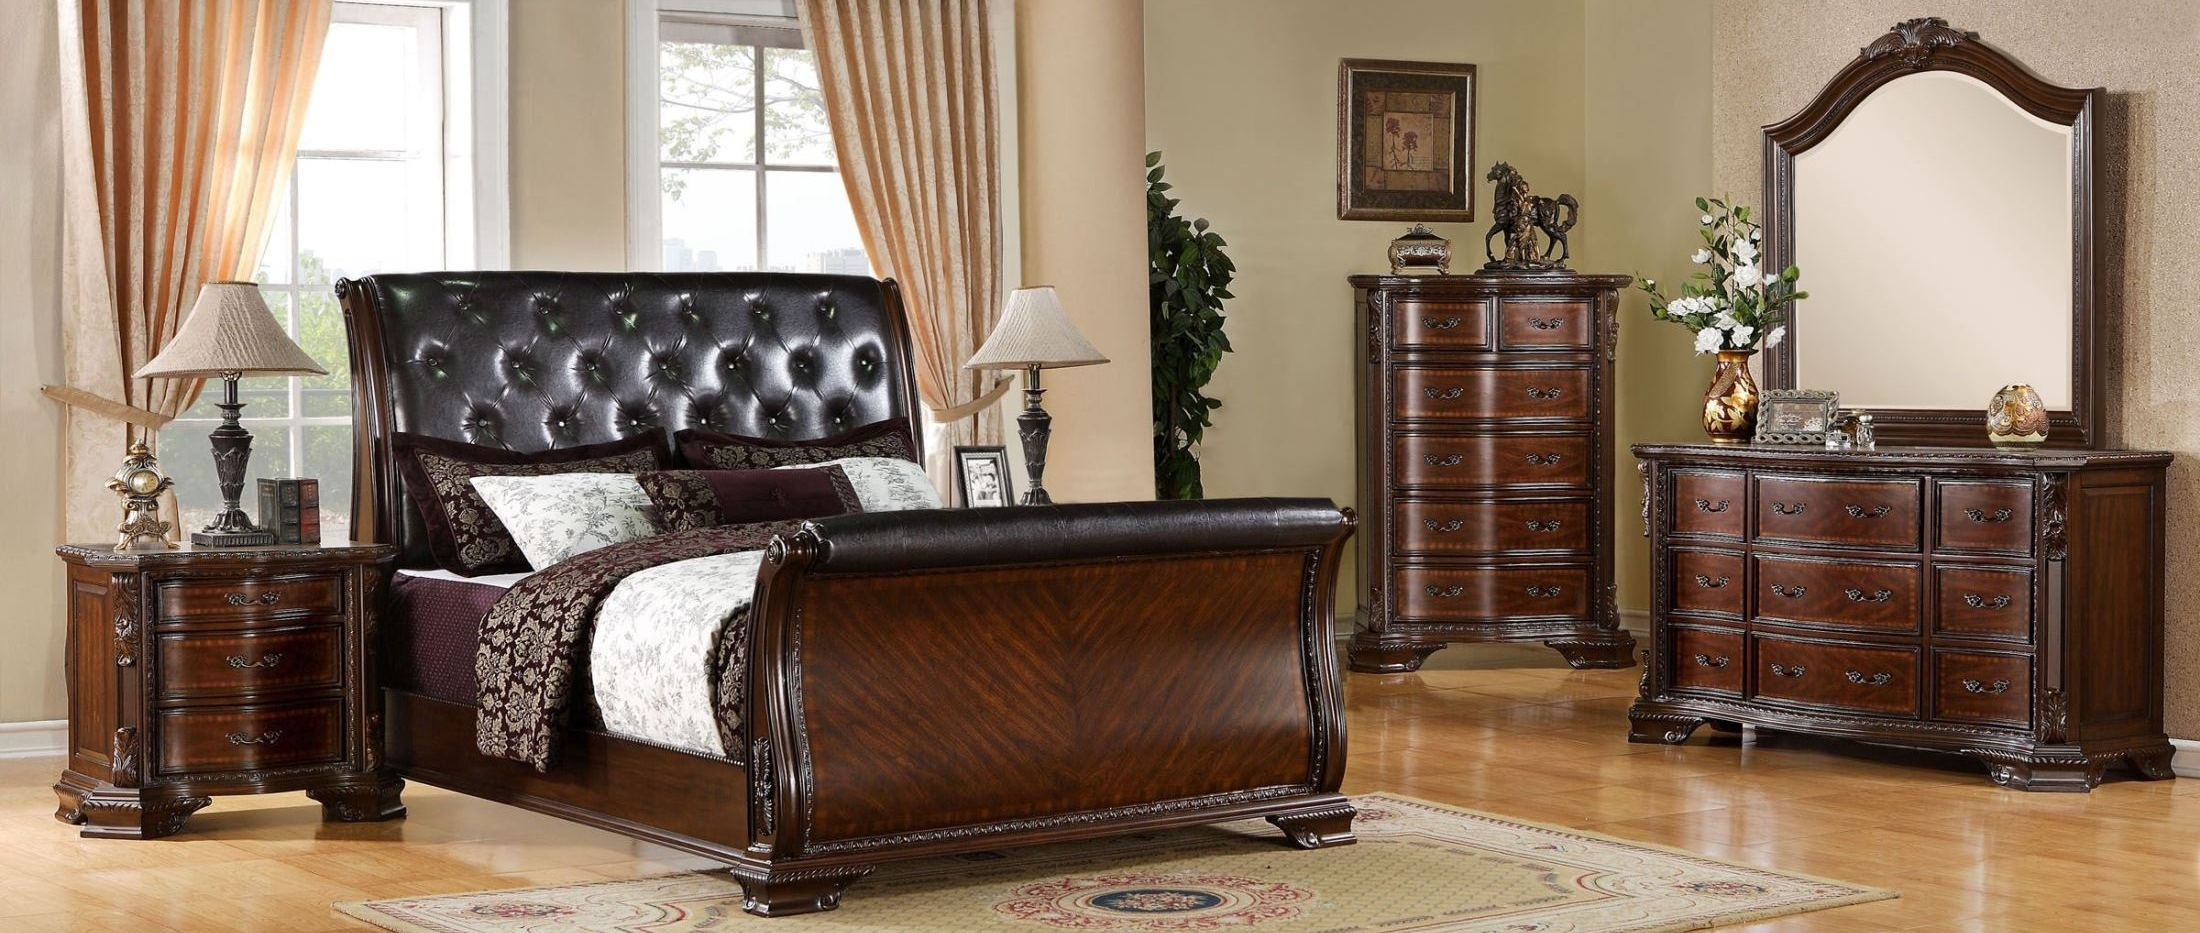 South Yorkshire Brown Cherry Sleigh Bedroom Set From Furniture Of America Coleman Furniture